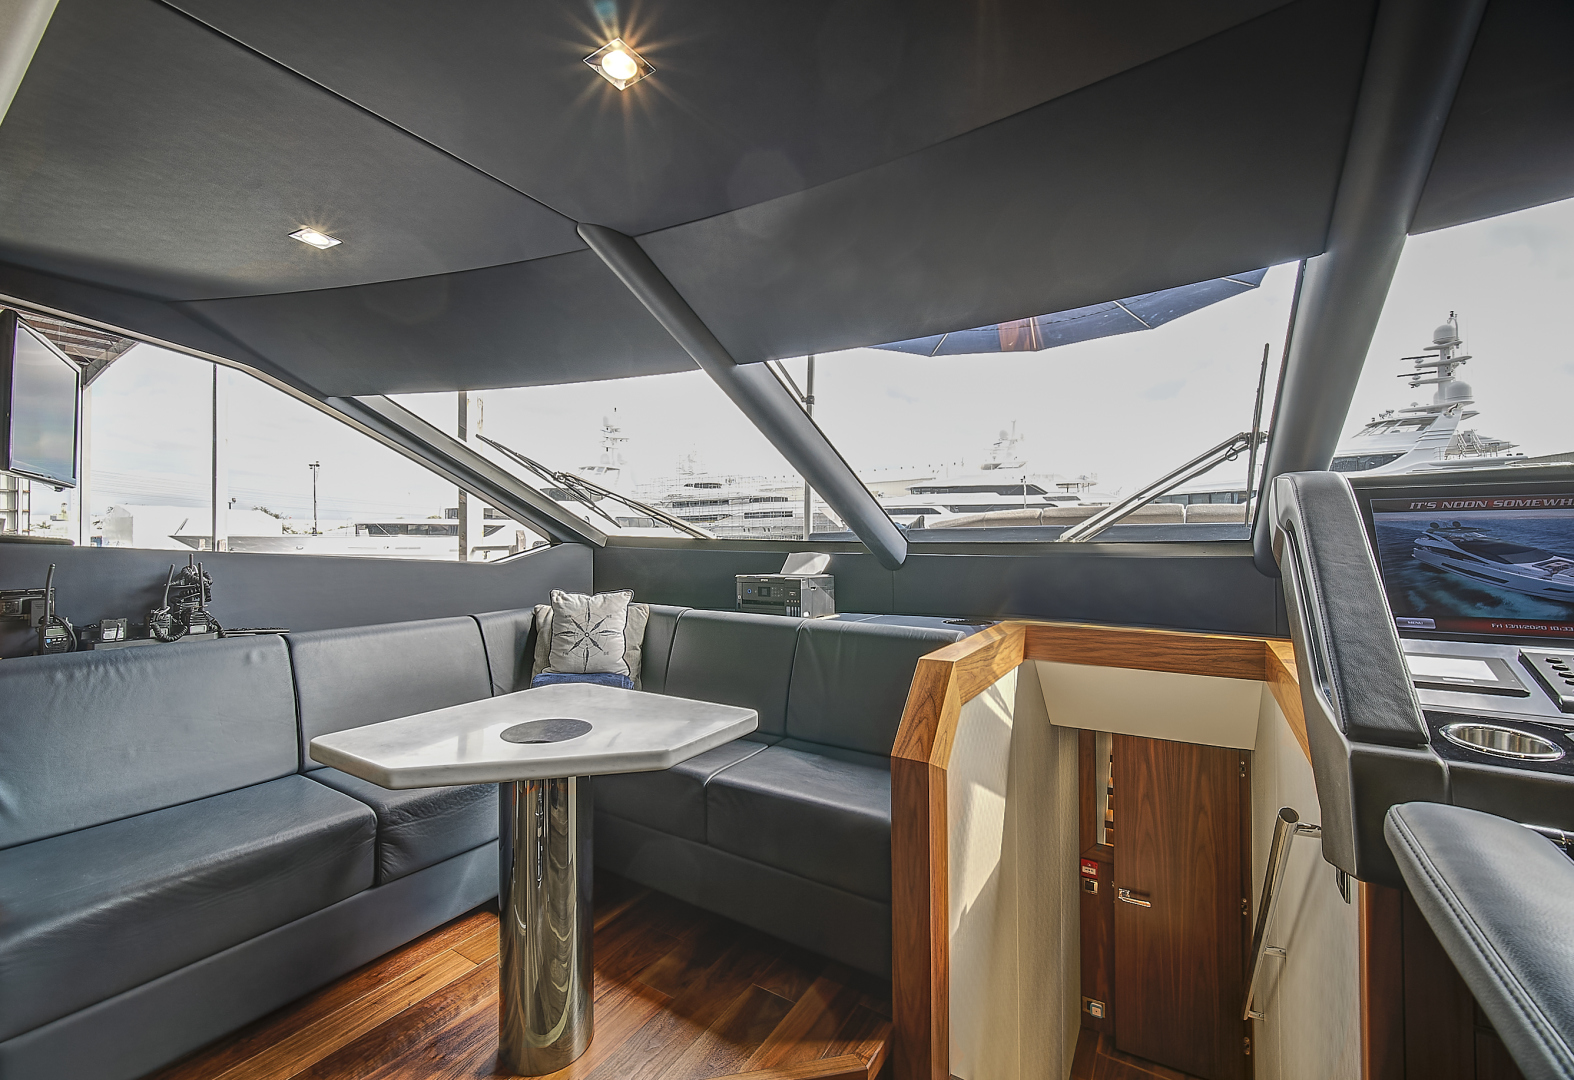 Sunseeker-86 Yacht 2019-Its Noon Somewhere Fort Lauderdale-Florida-United States-1556709 | Thumbnail